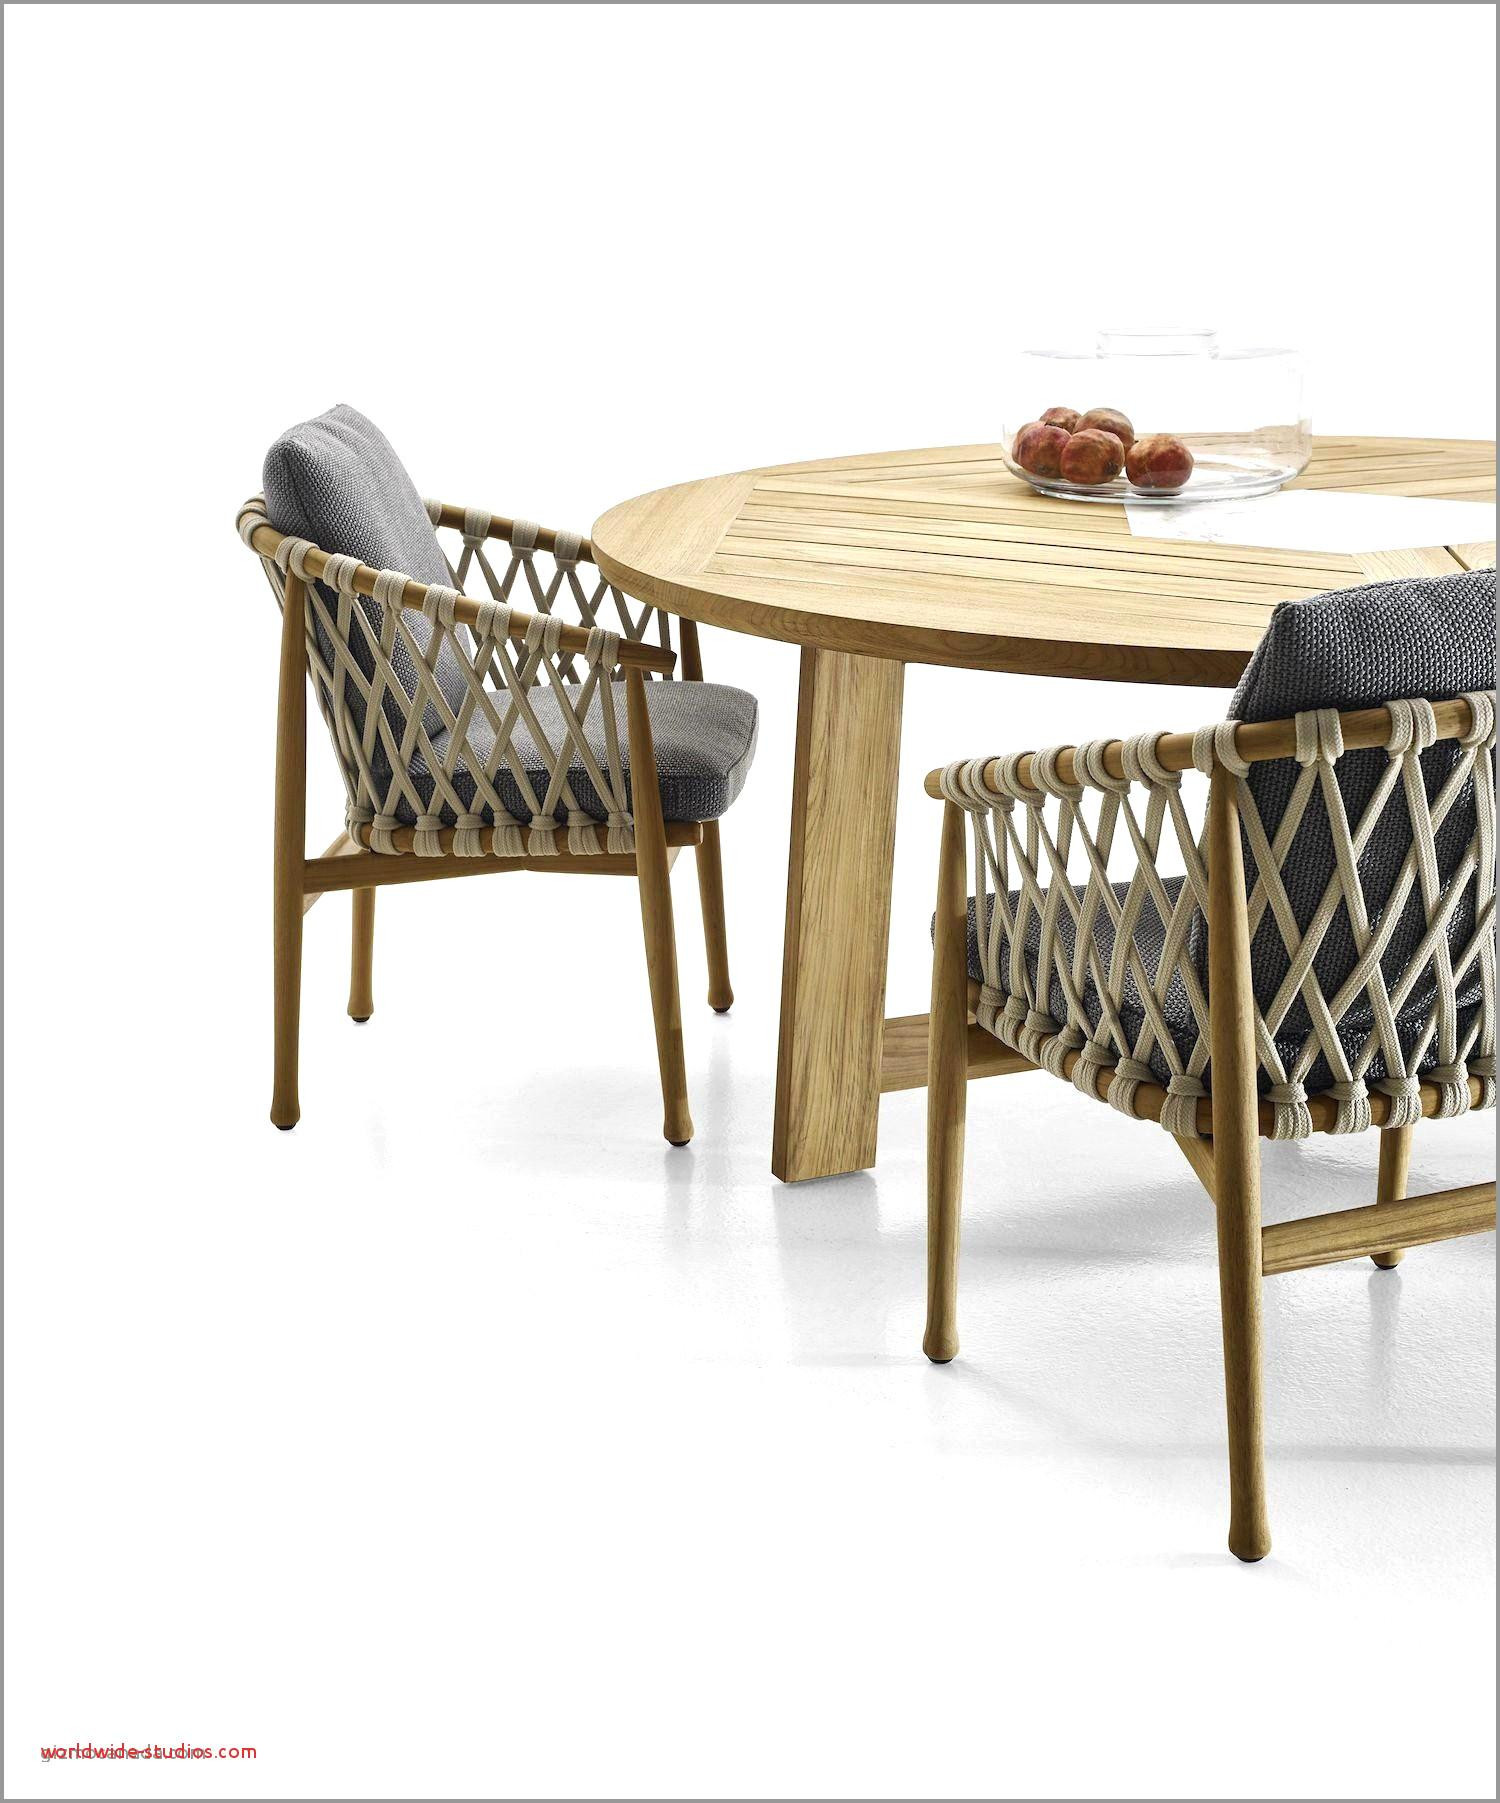 vase base stand of best diy table base trends economyinnbeebe com for dining table with chairs sale fresh furniture small couches luxury wicker outdoor sofa 0d patio chairs